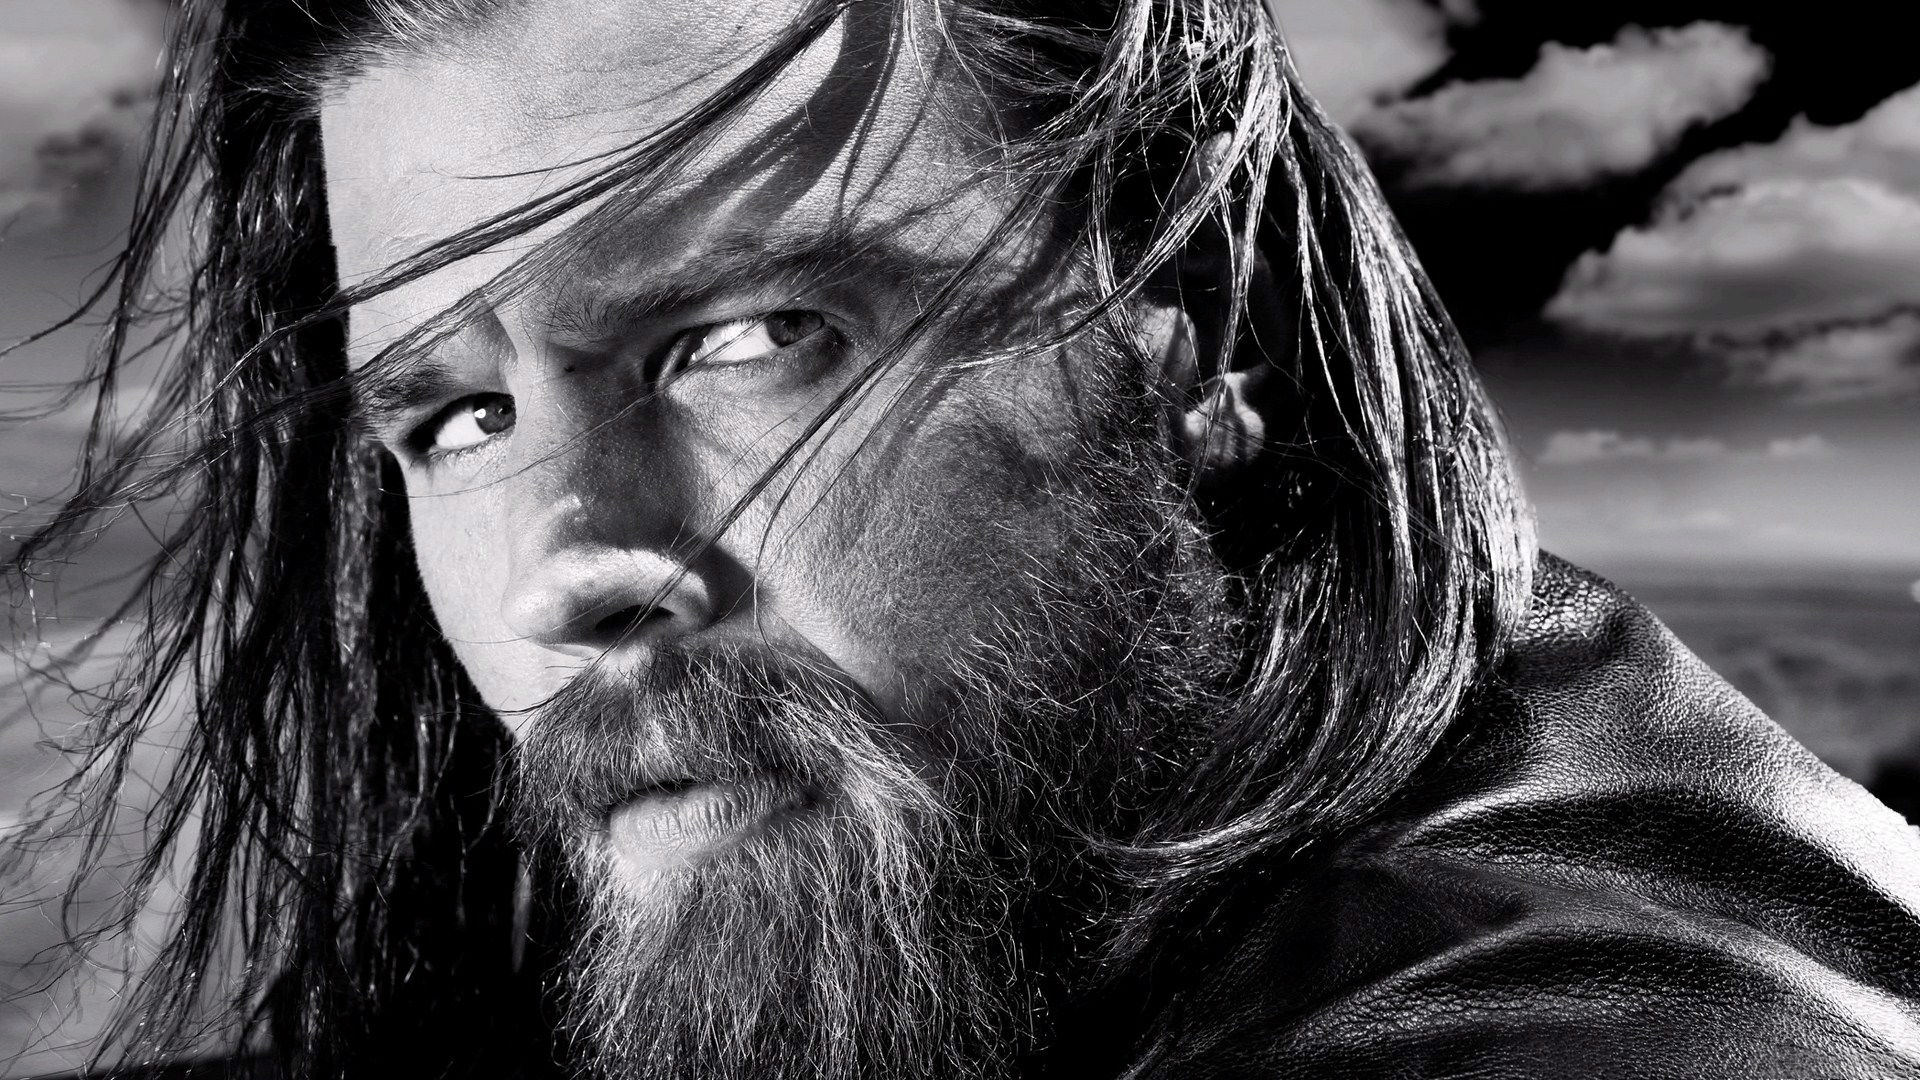 Sons of Anarchy wallpaper 9